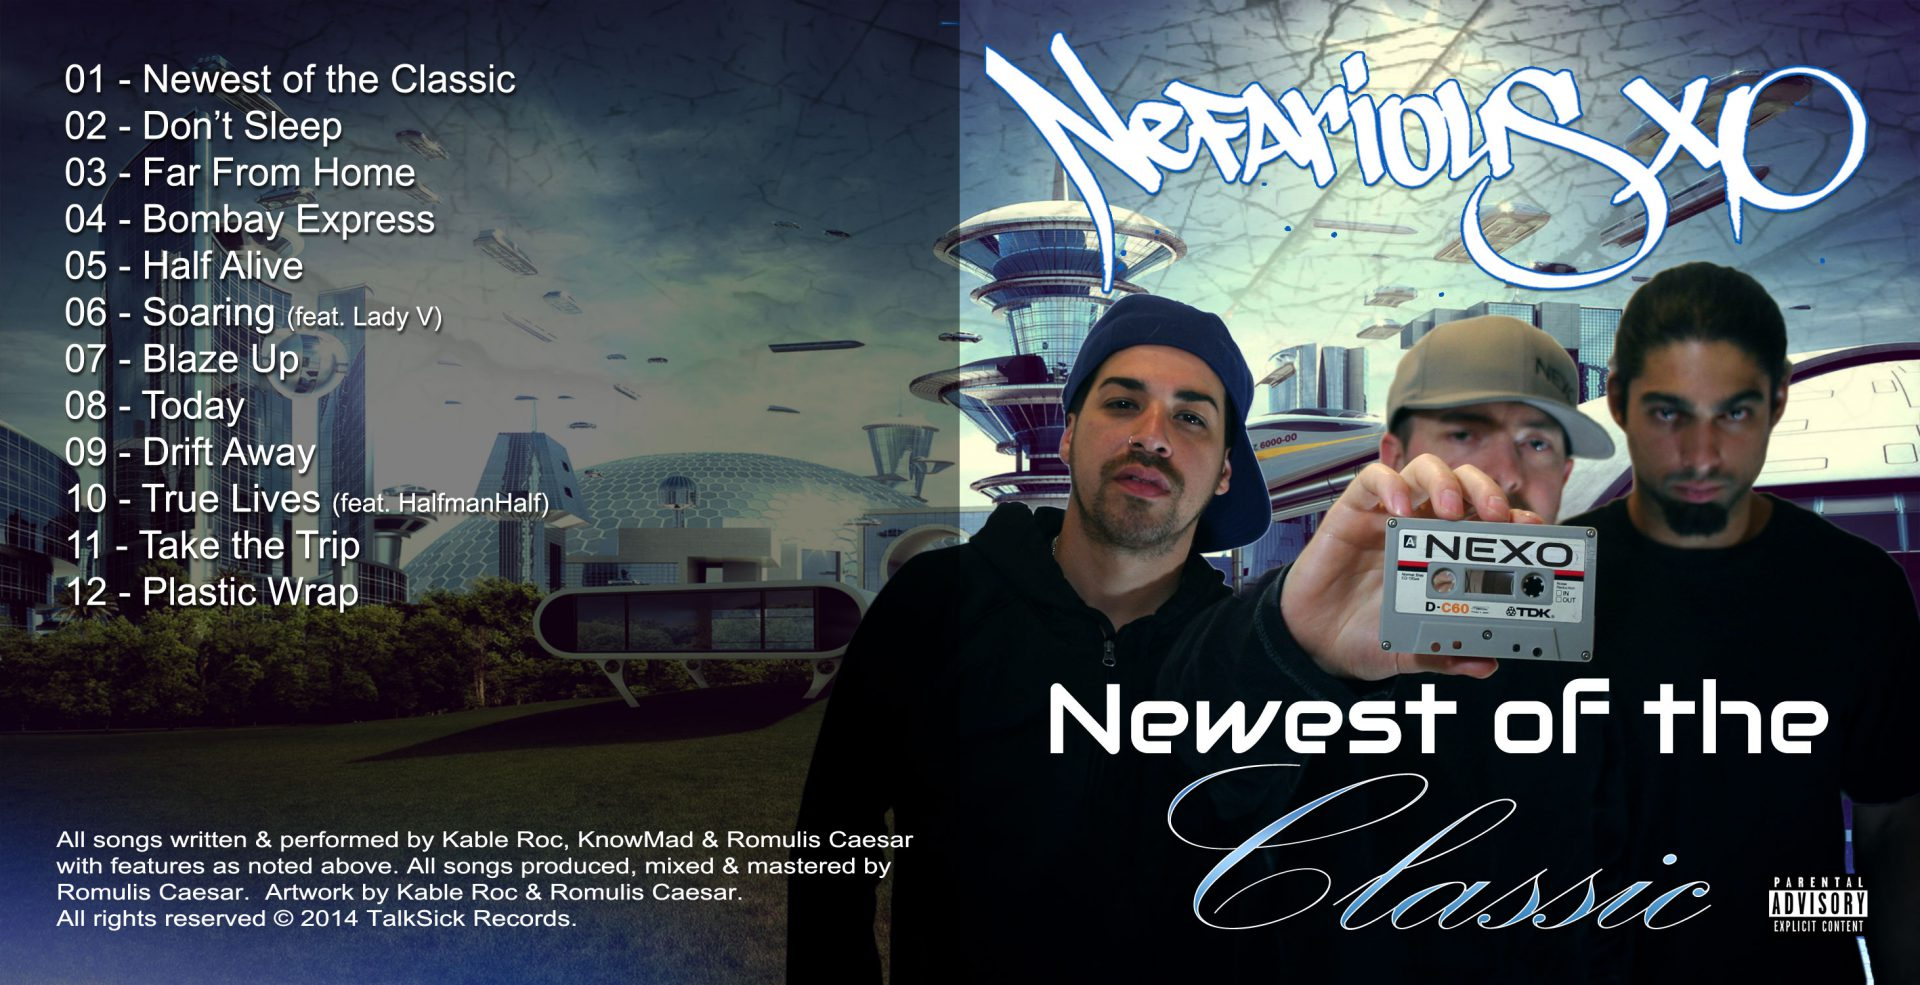 Nefarious XO - Newest of the Classic Outside Cover Art